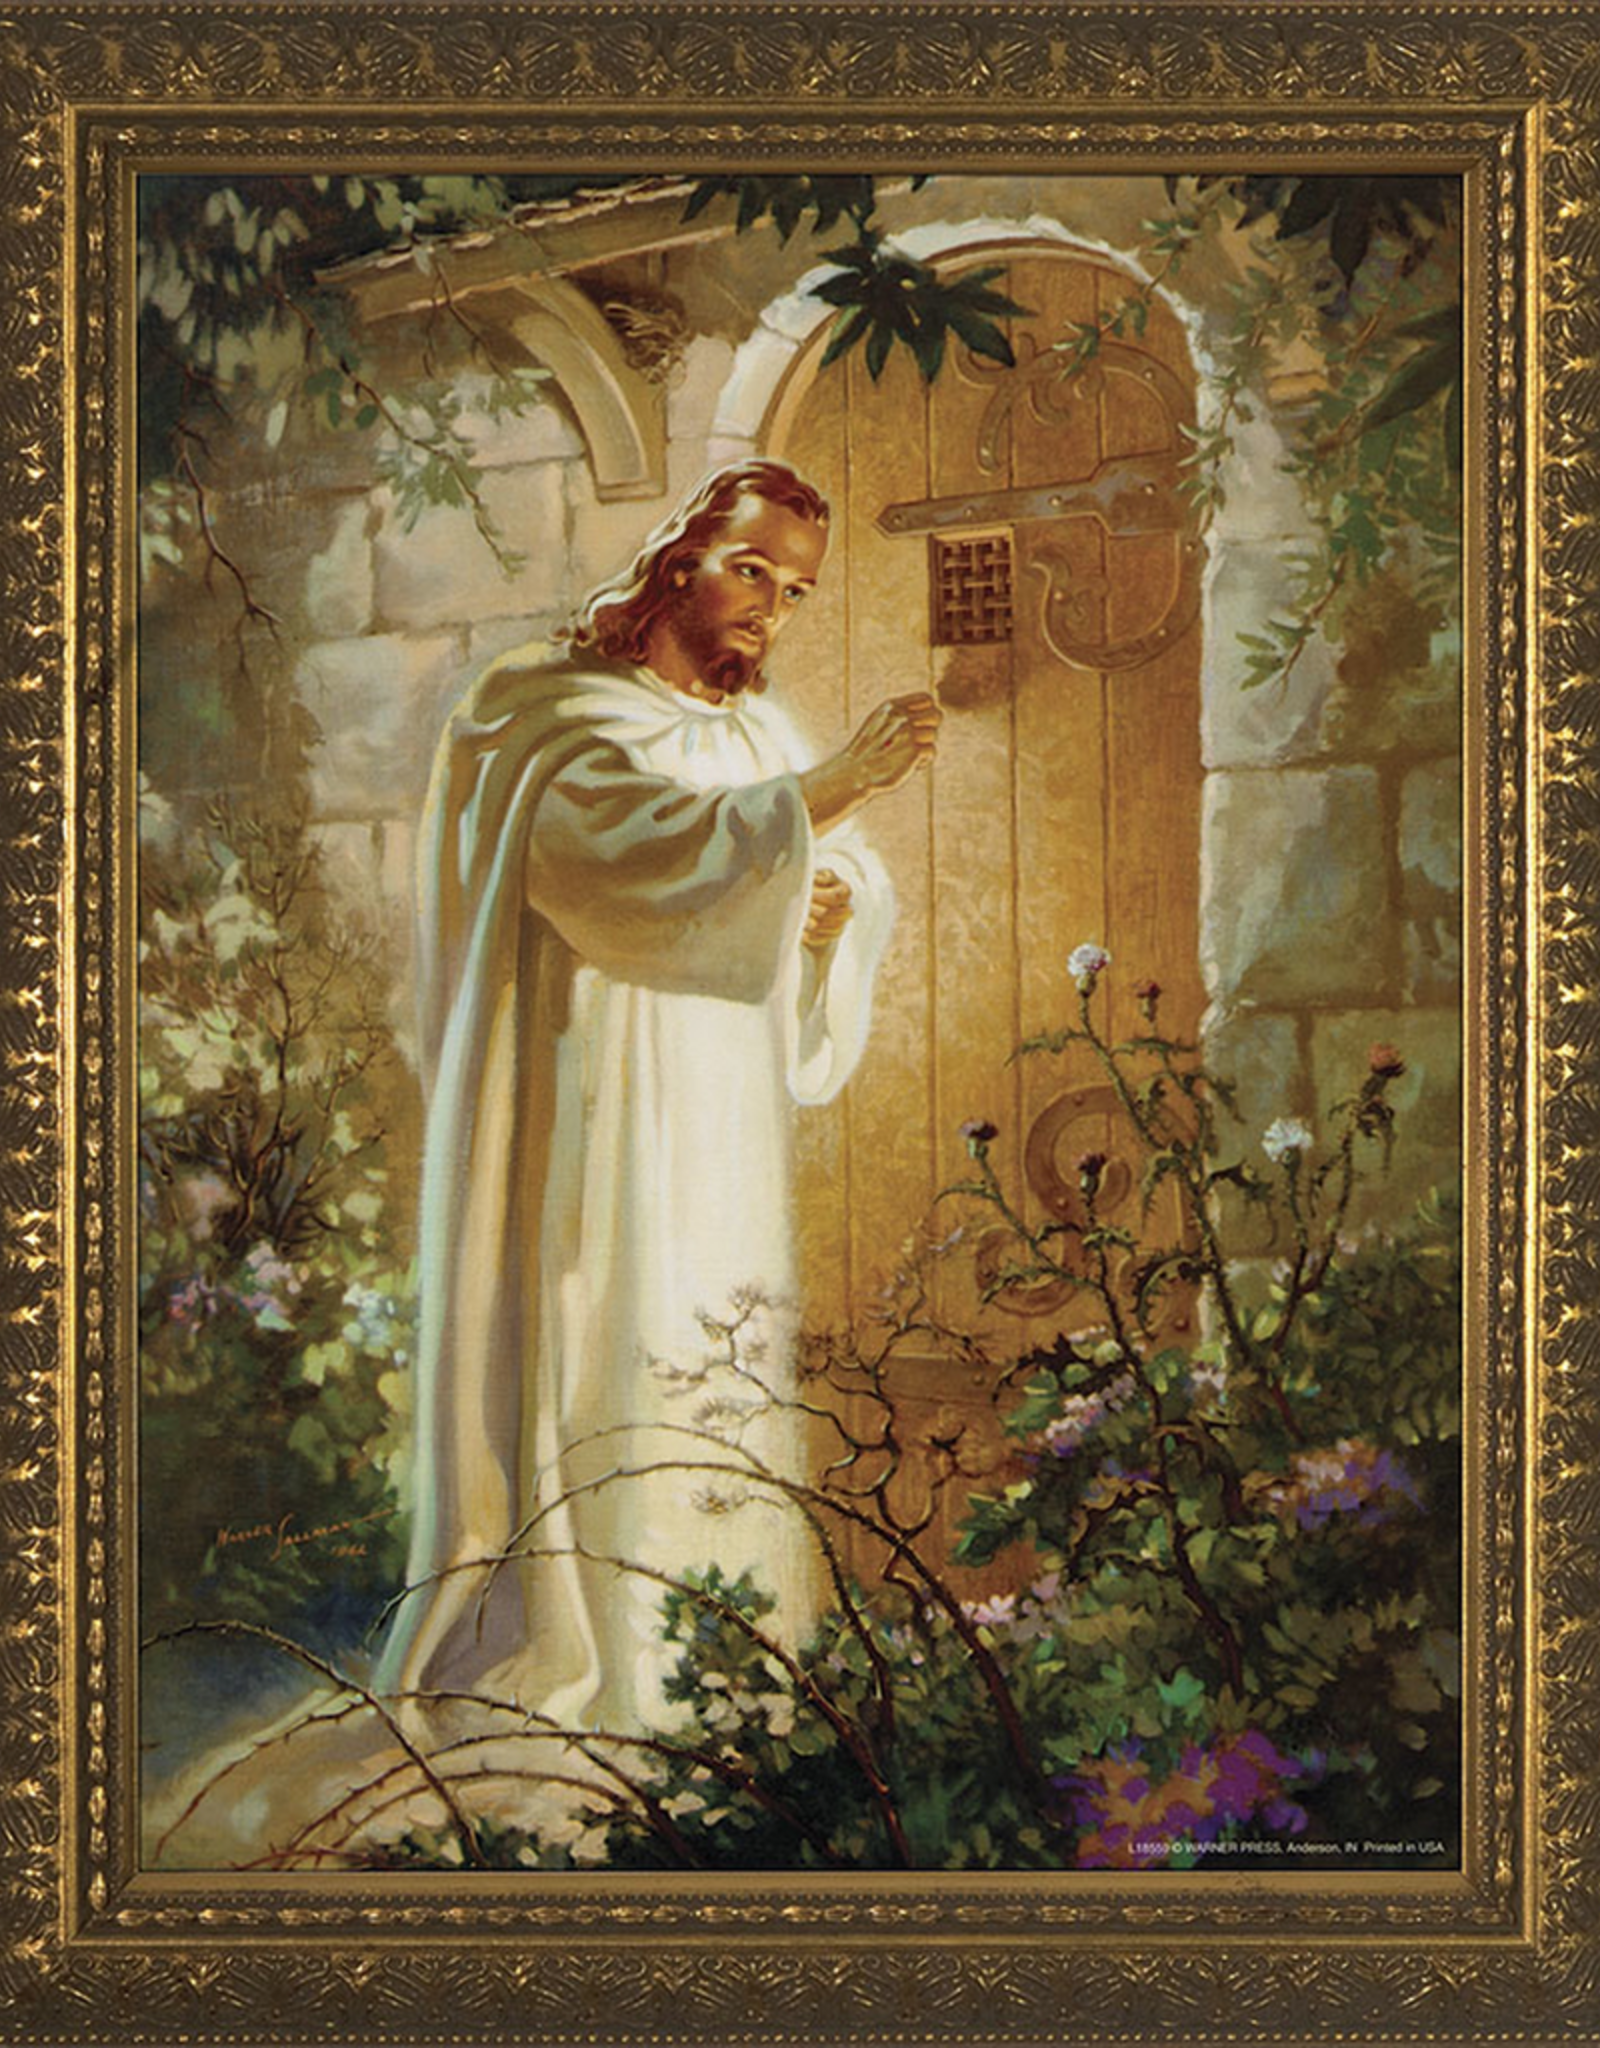 Nelson/Catholic to the Max Christ at Heart‰Ûªs Door Framed Image in Gold Frame 5 x 7‰Û